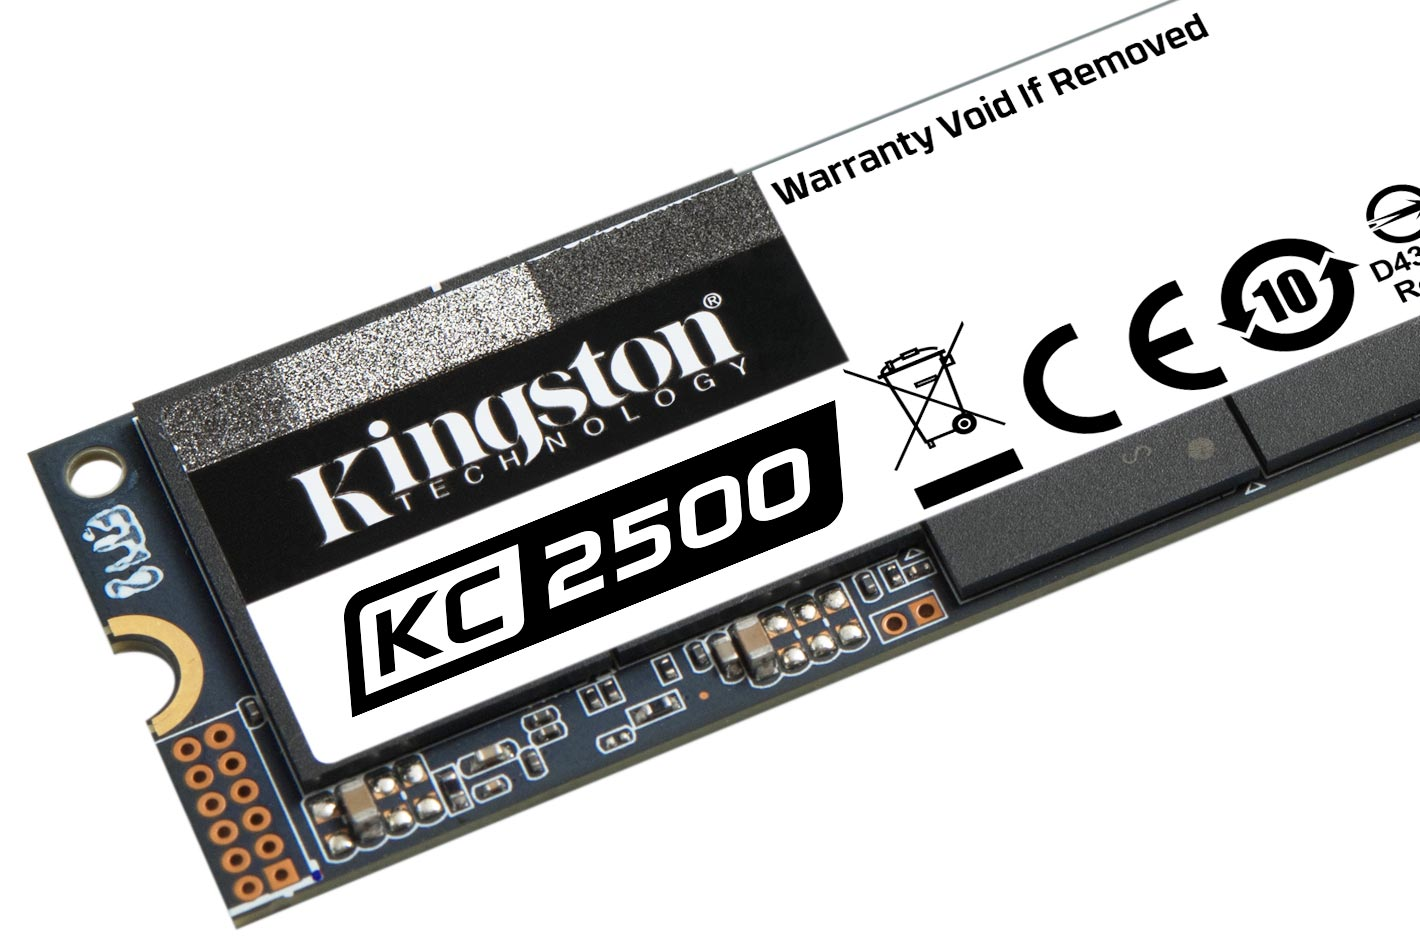 Kingston ships 2TB KC2500 NVMe PCIe SSD with encryption options